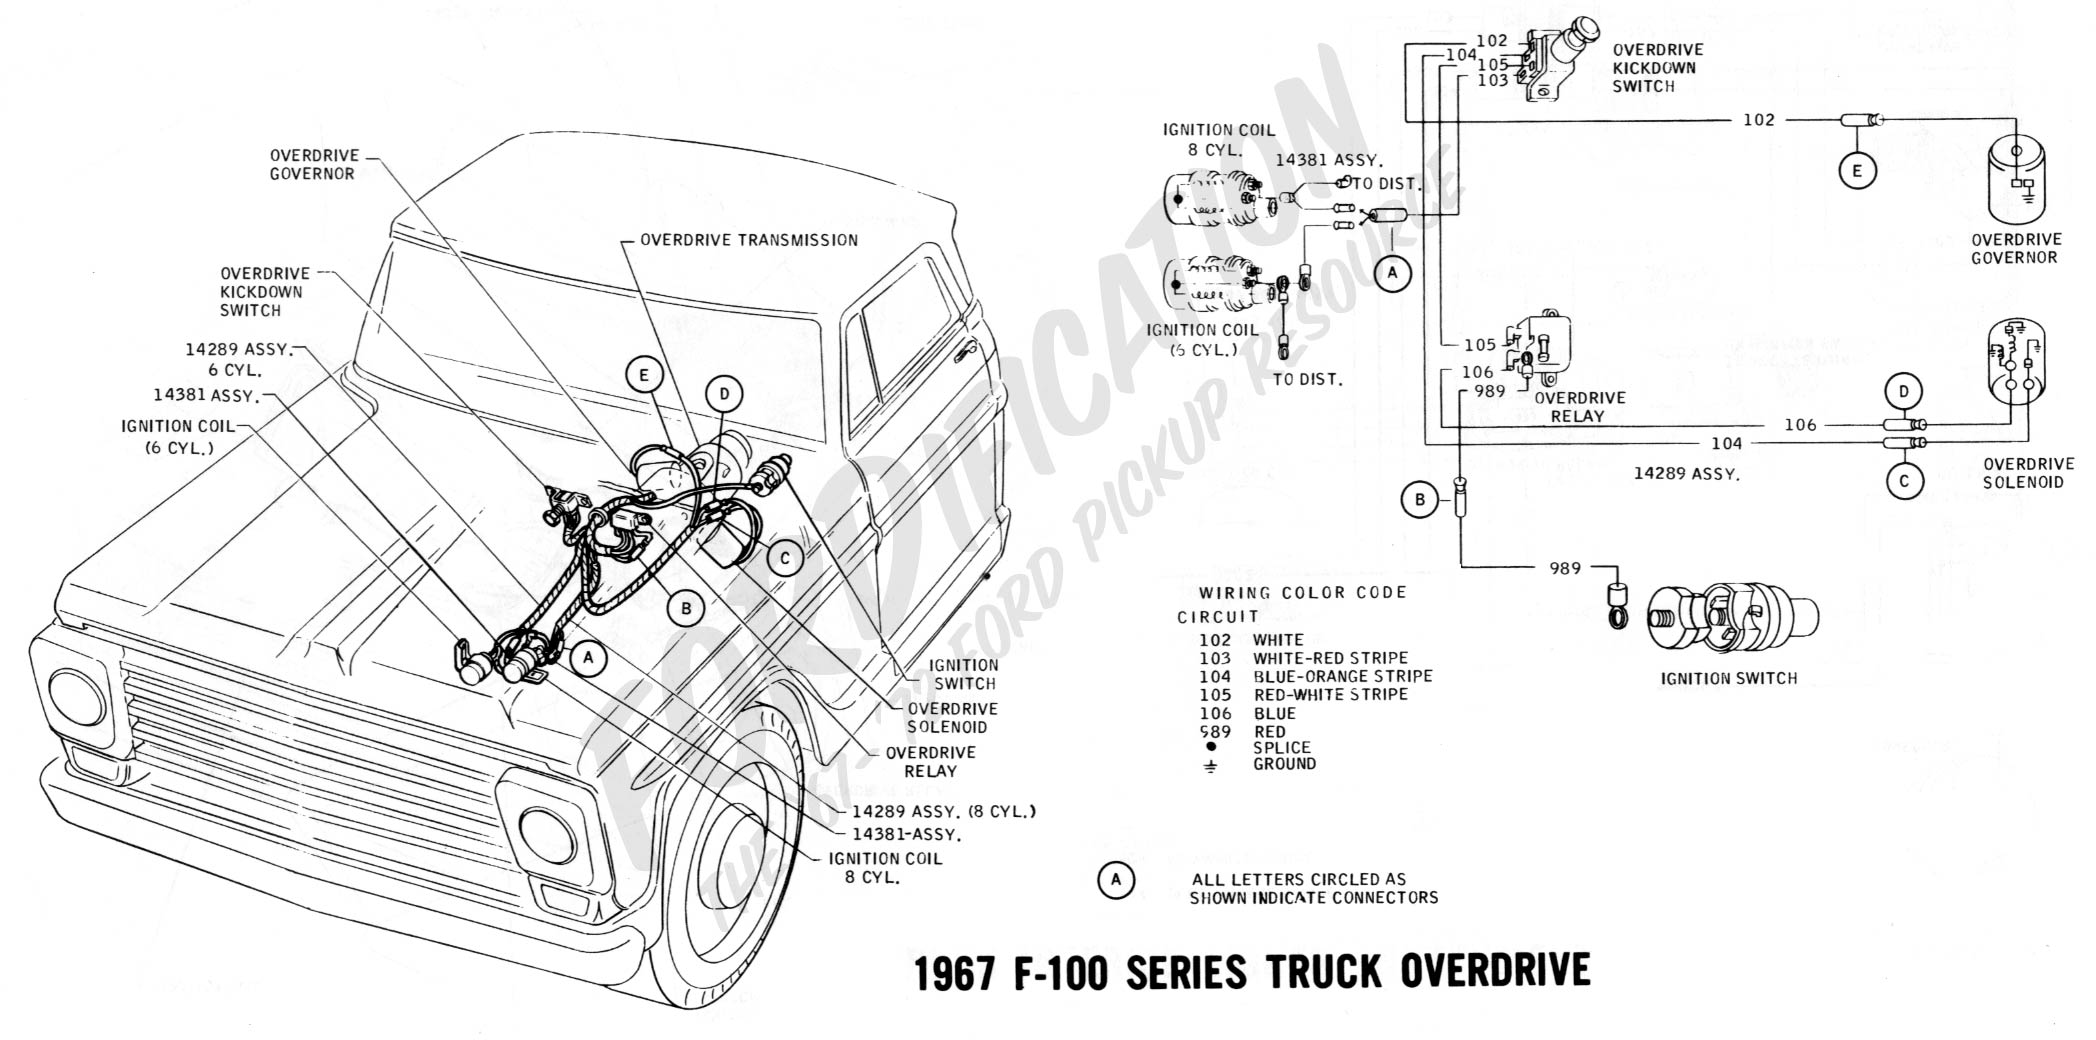 Ford Truck Technical Drawings And Schematics Section H Wiring 1965 Ford  F100 Wiring Diagram Ford 1967 Truck Wiring Diagram. Source. 1967 72 chevy  ...